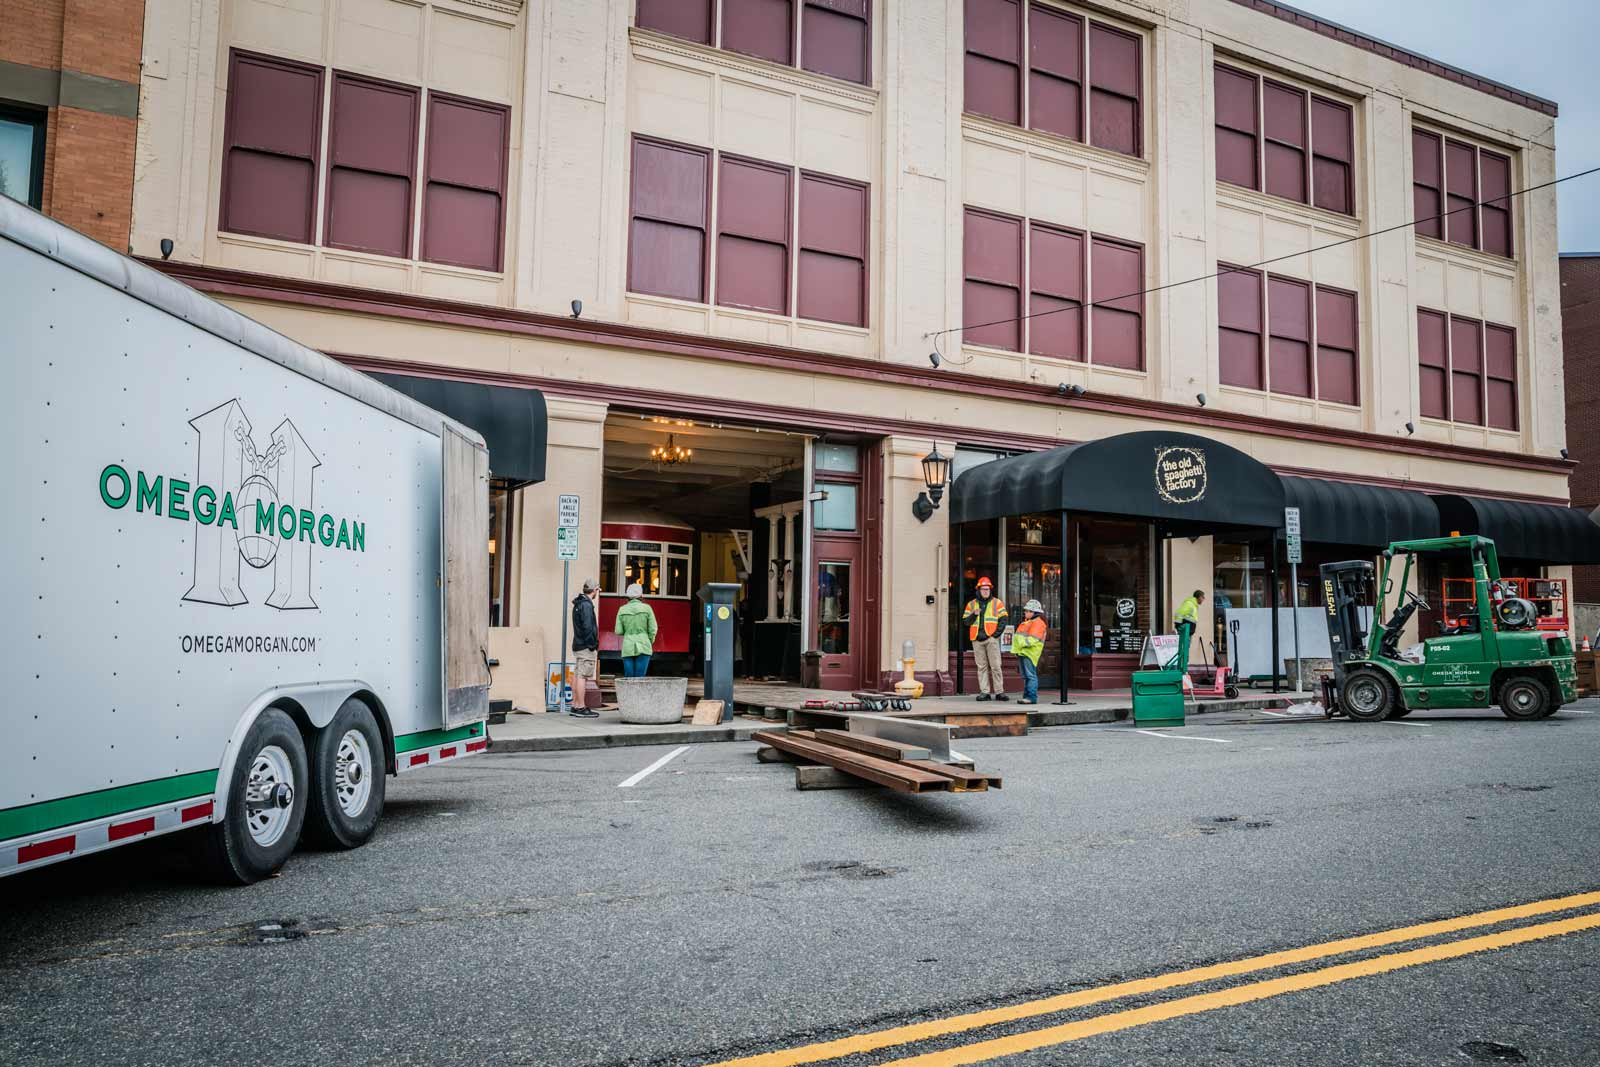 omega morgan trailer and outside of Old Spaghetti Factory while antique trolley is being put into the building